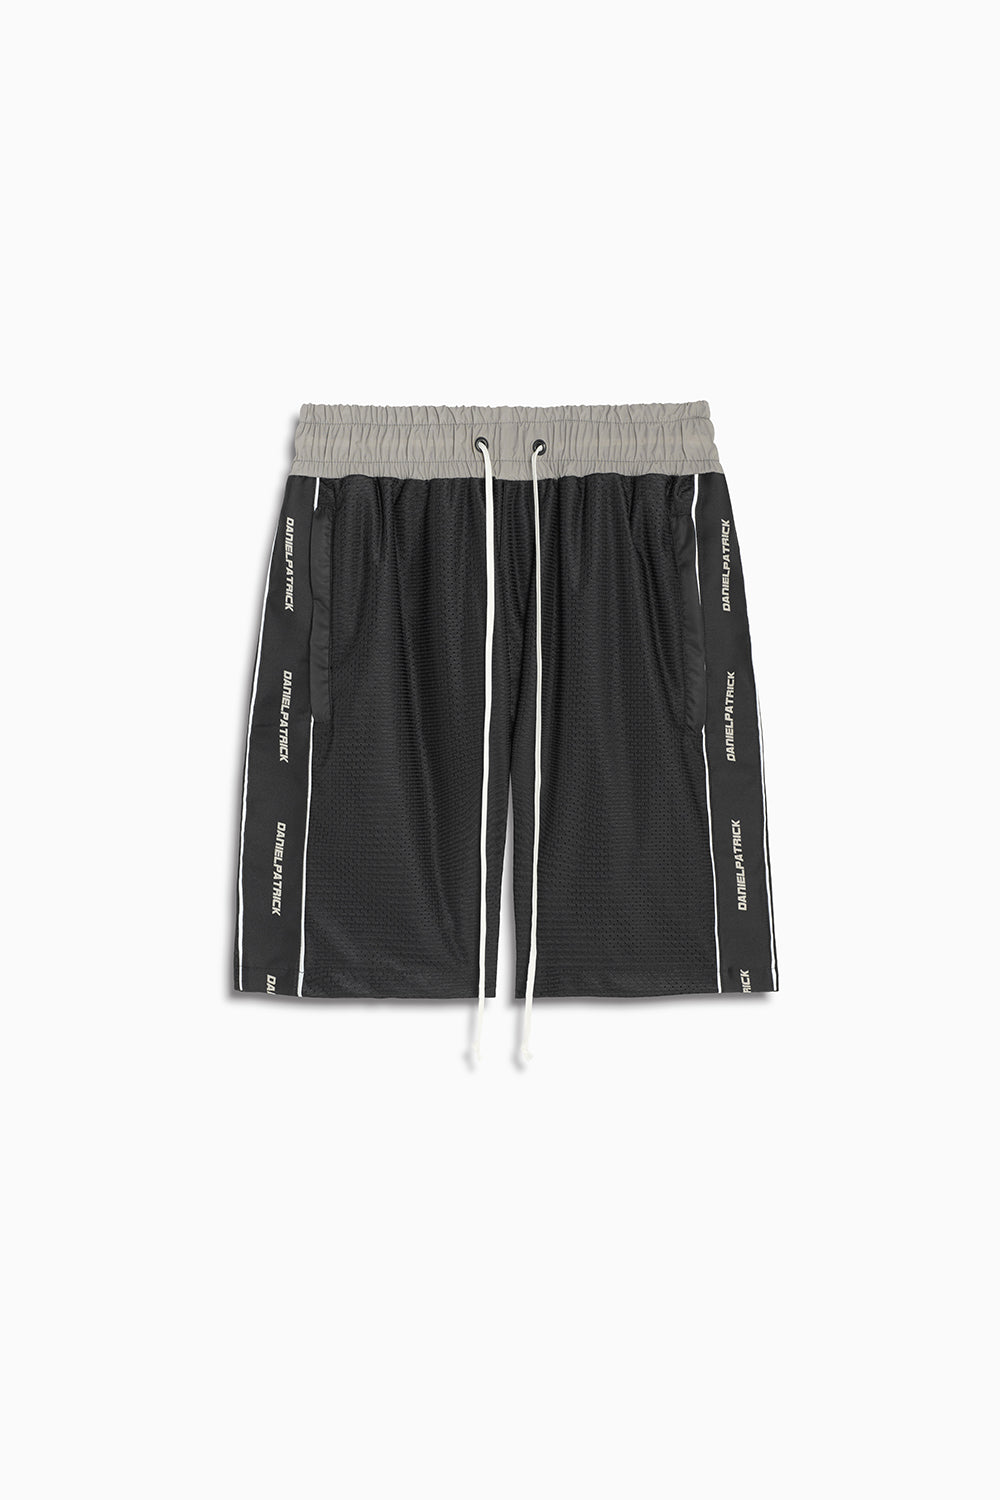 3M Mesh Gym Short / black + smog grey